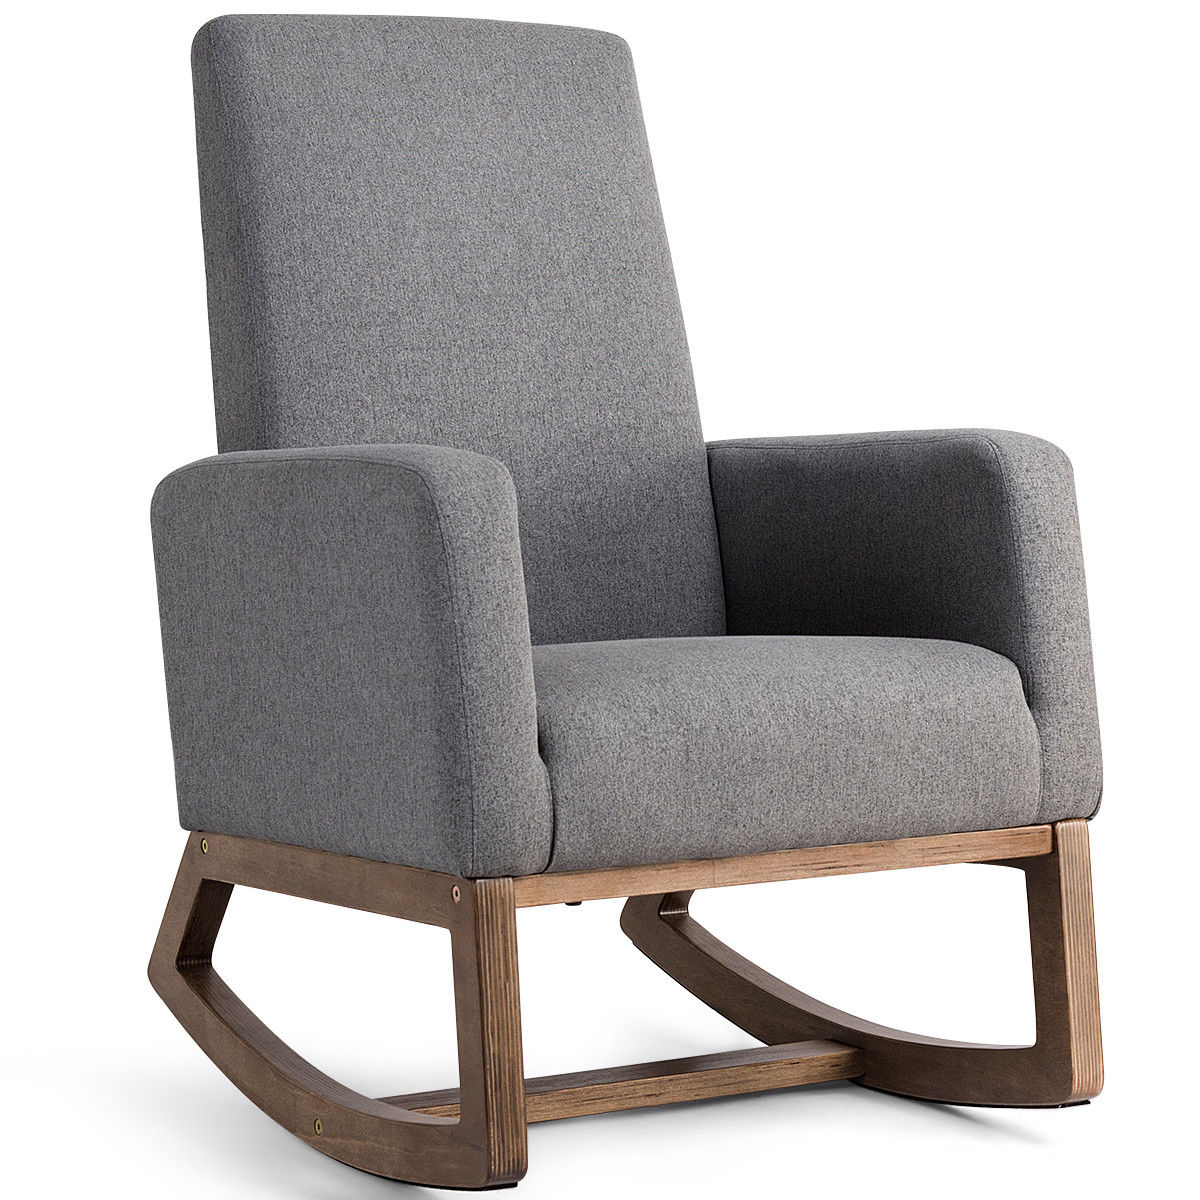 Costway: Costway Mid Century Retro Modern Fabric Upholstered Rocking Chair  Relax Rocker Gray | Rakuten With Mid Century Fabric Rocking Chairs (#8 of 20)